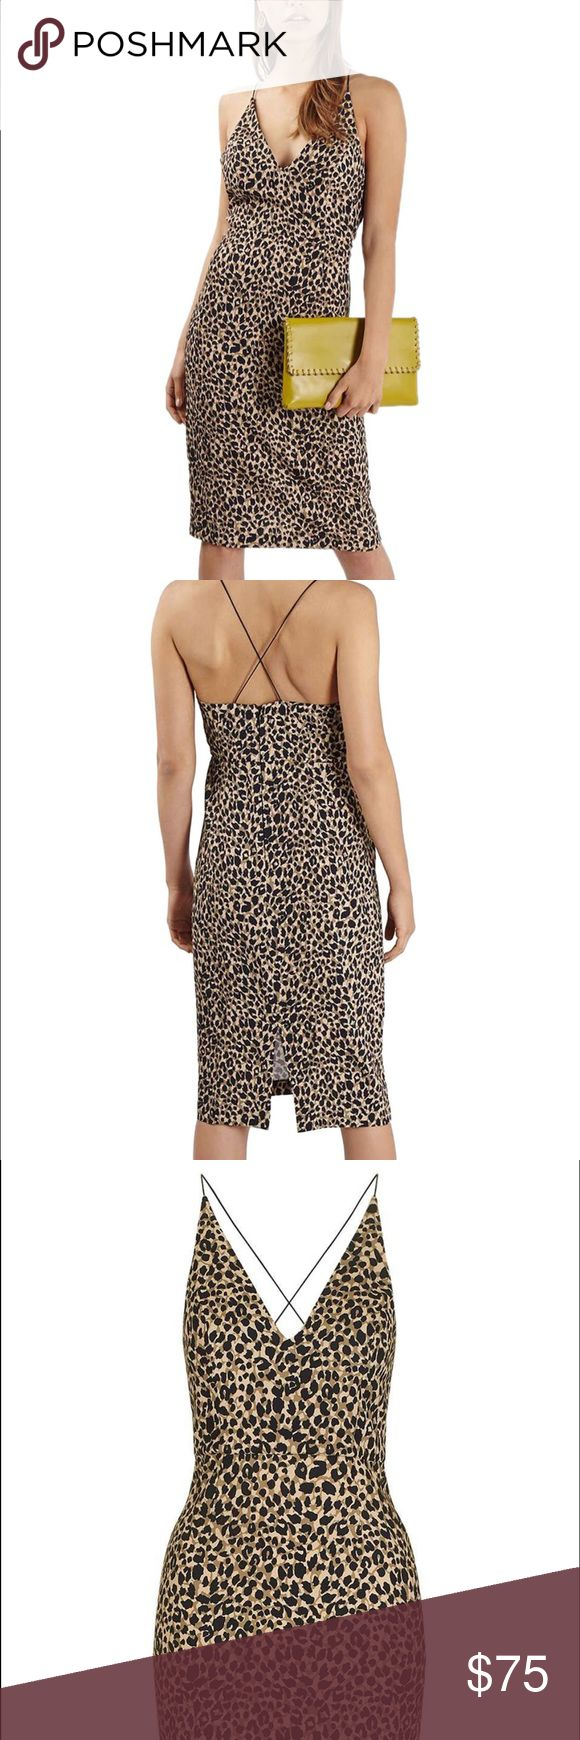 NWT TOPSHOP ANIMAL PRINT BODY CON DRESS Omg.. this dress is uhhhmaaszing!!! Brand new never worn. Topshop Dresses Midi